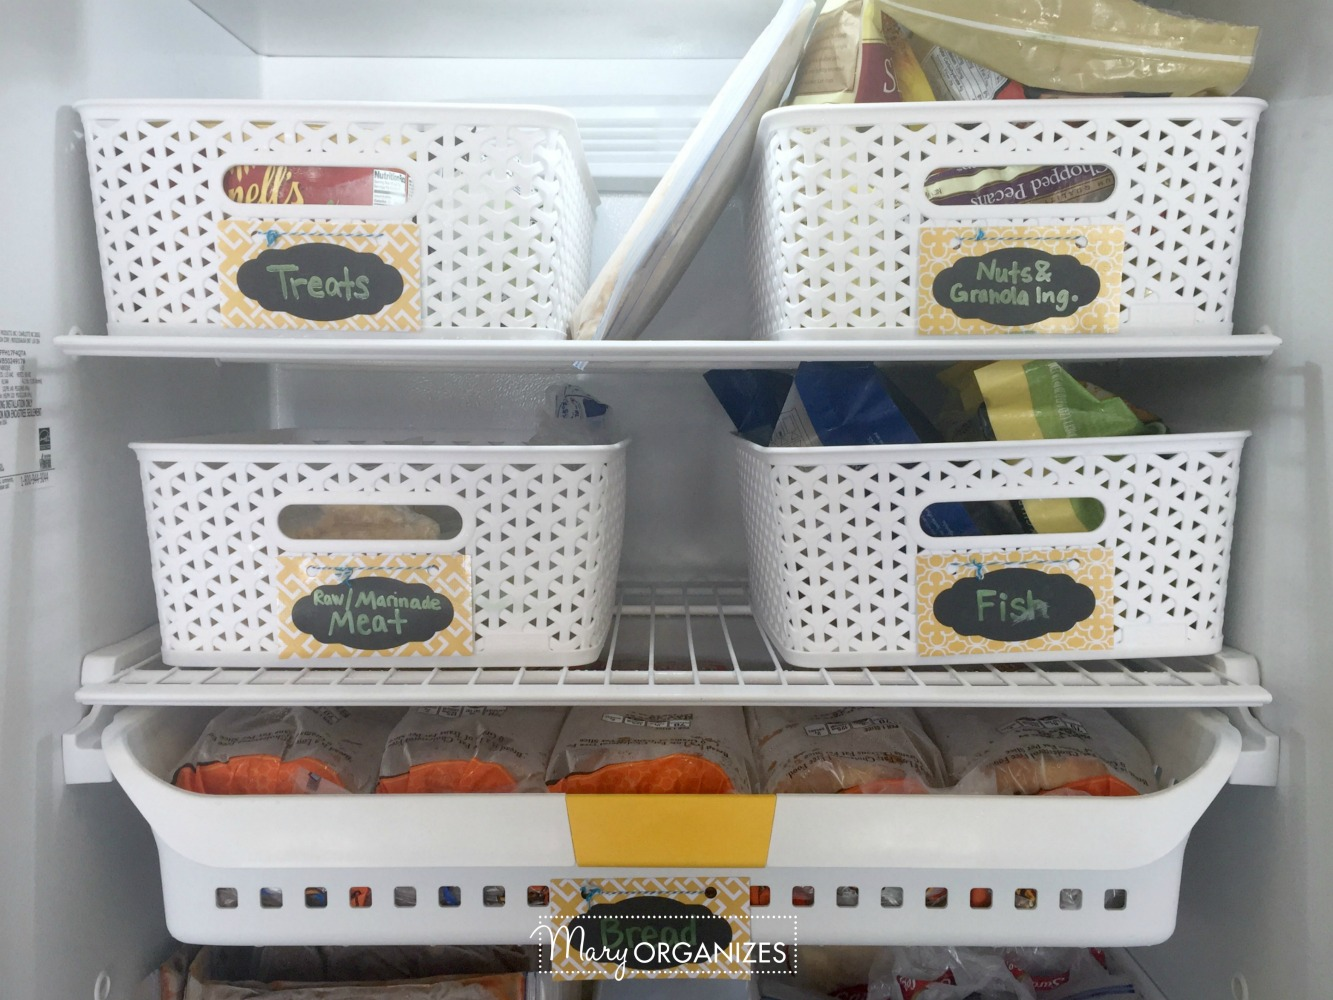 HOW TO Organize A Stand-Up Freezer 1